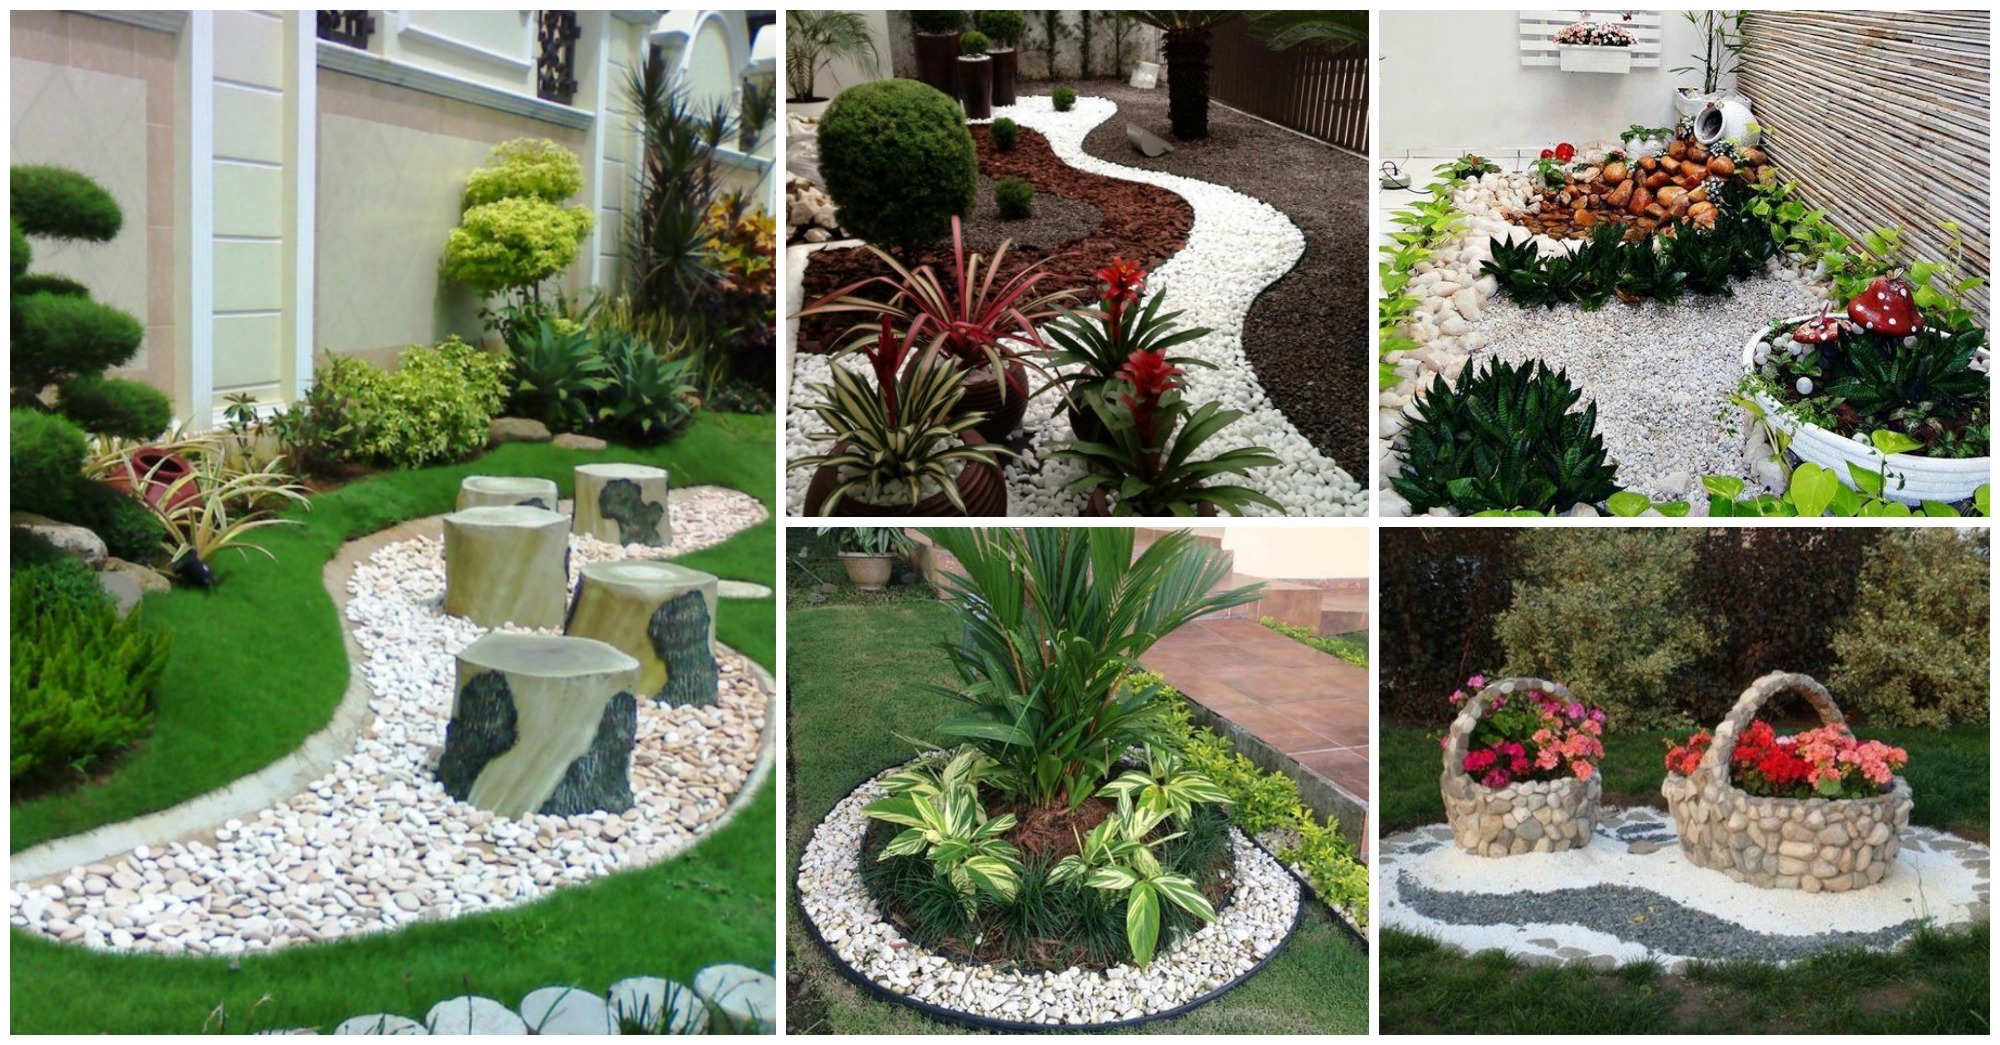 12 fant sticas ideas para dise ar un jard n con piedras for Ideas de decoracion de jardines